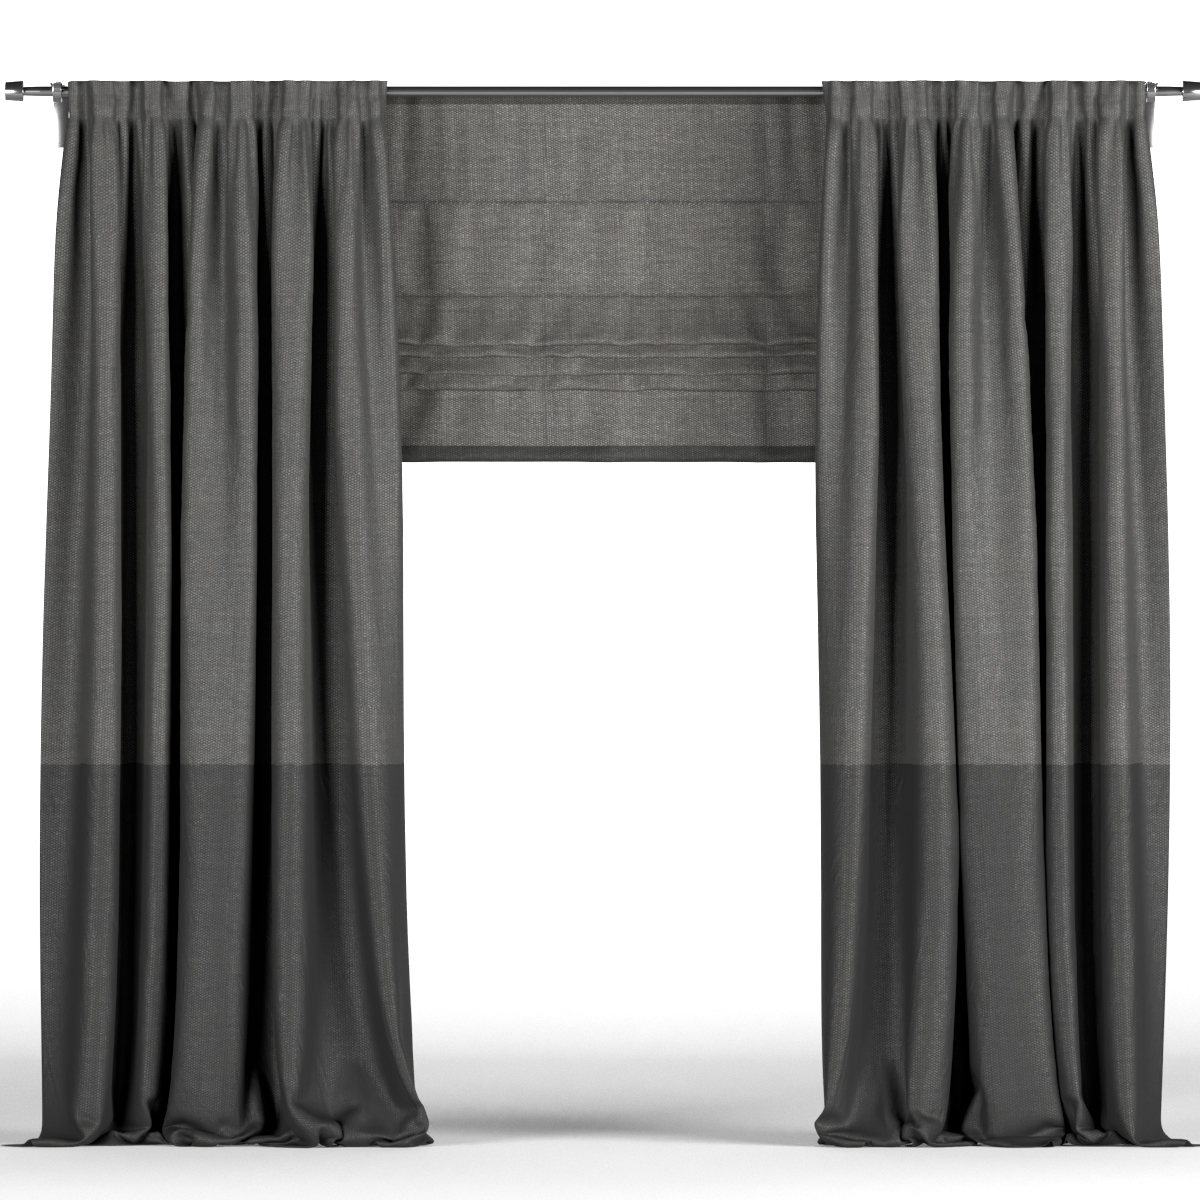 Black Curtains In Two Shades And Black Roman Blinds